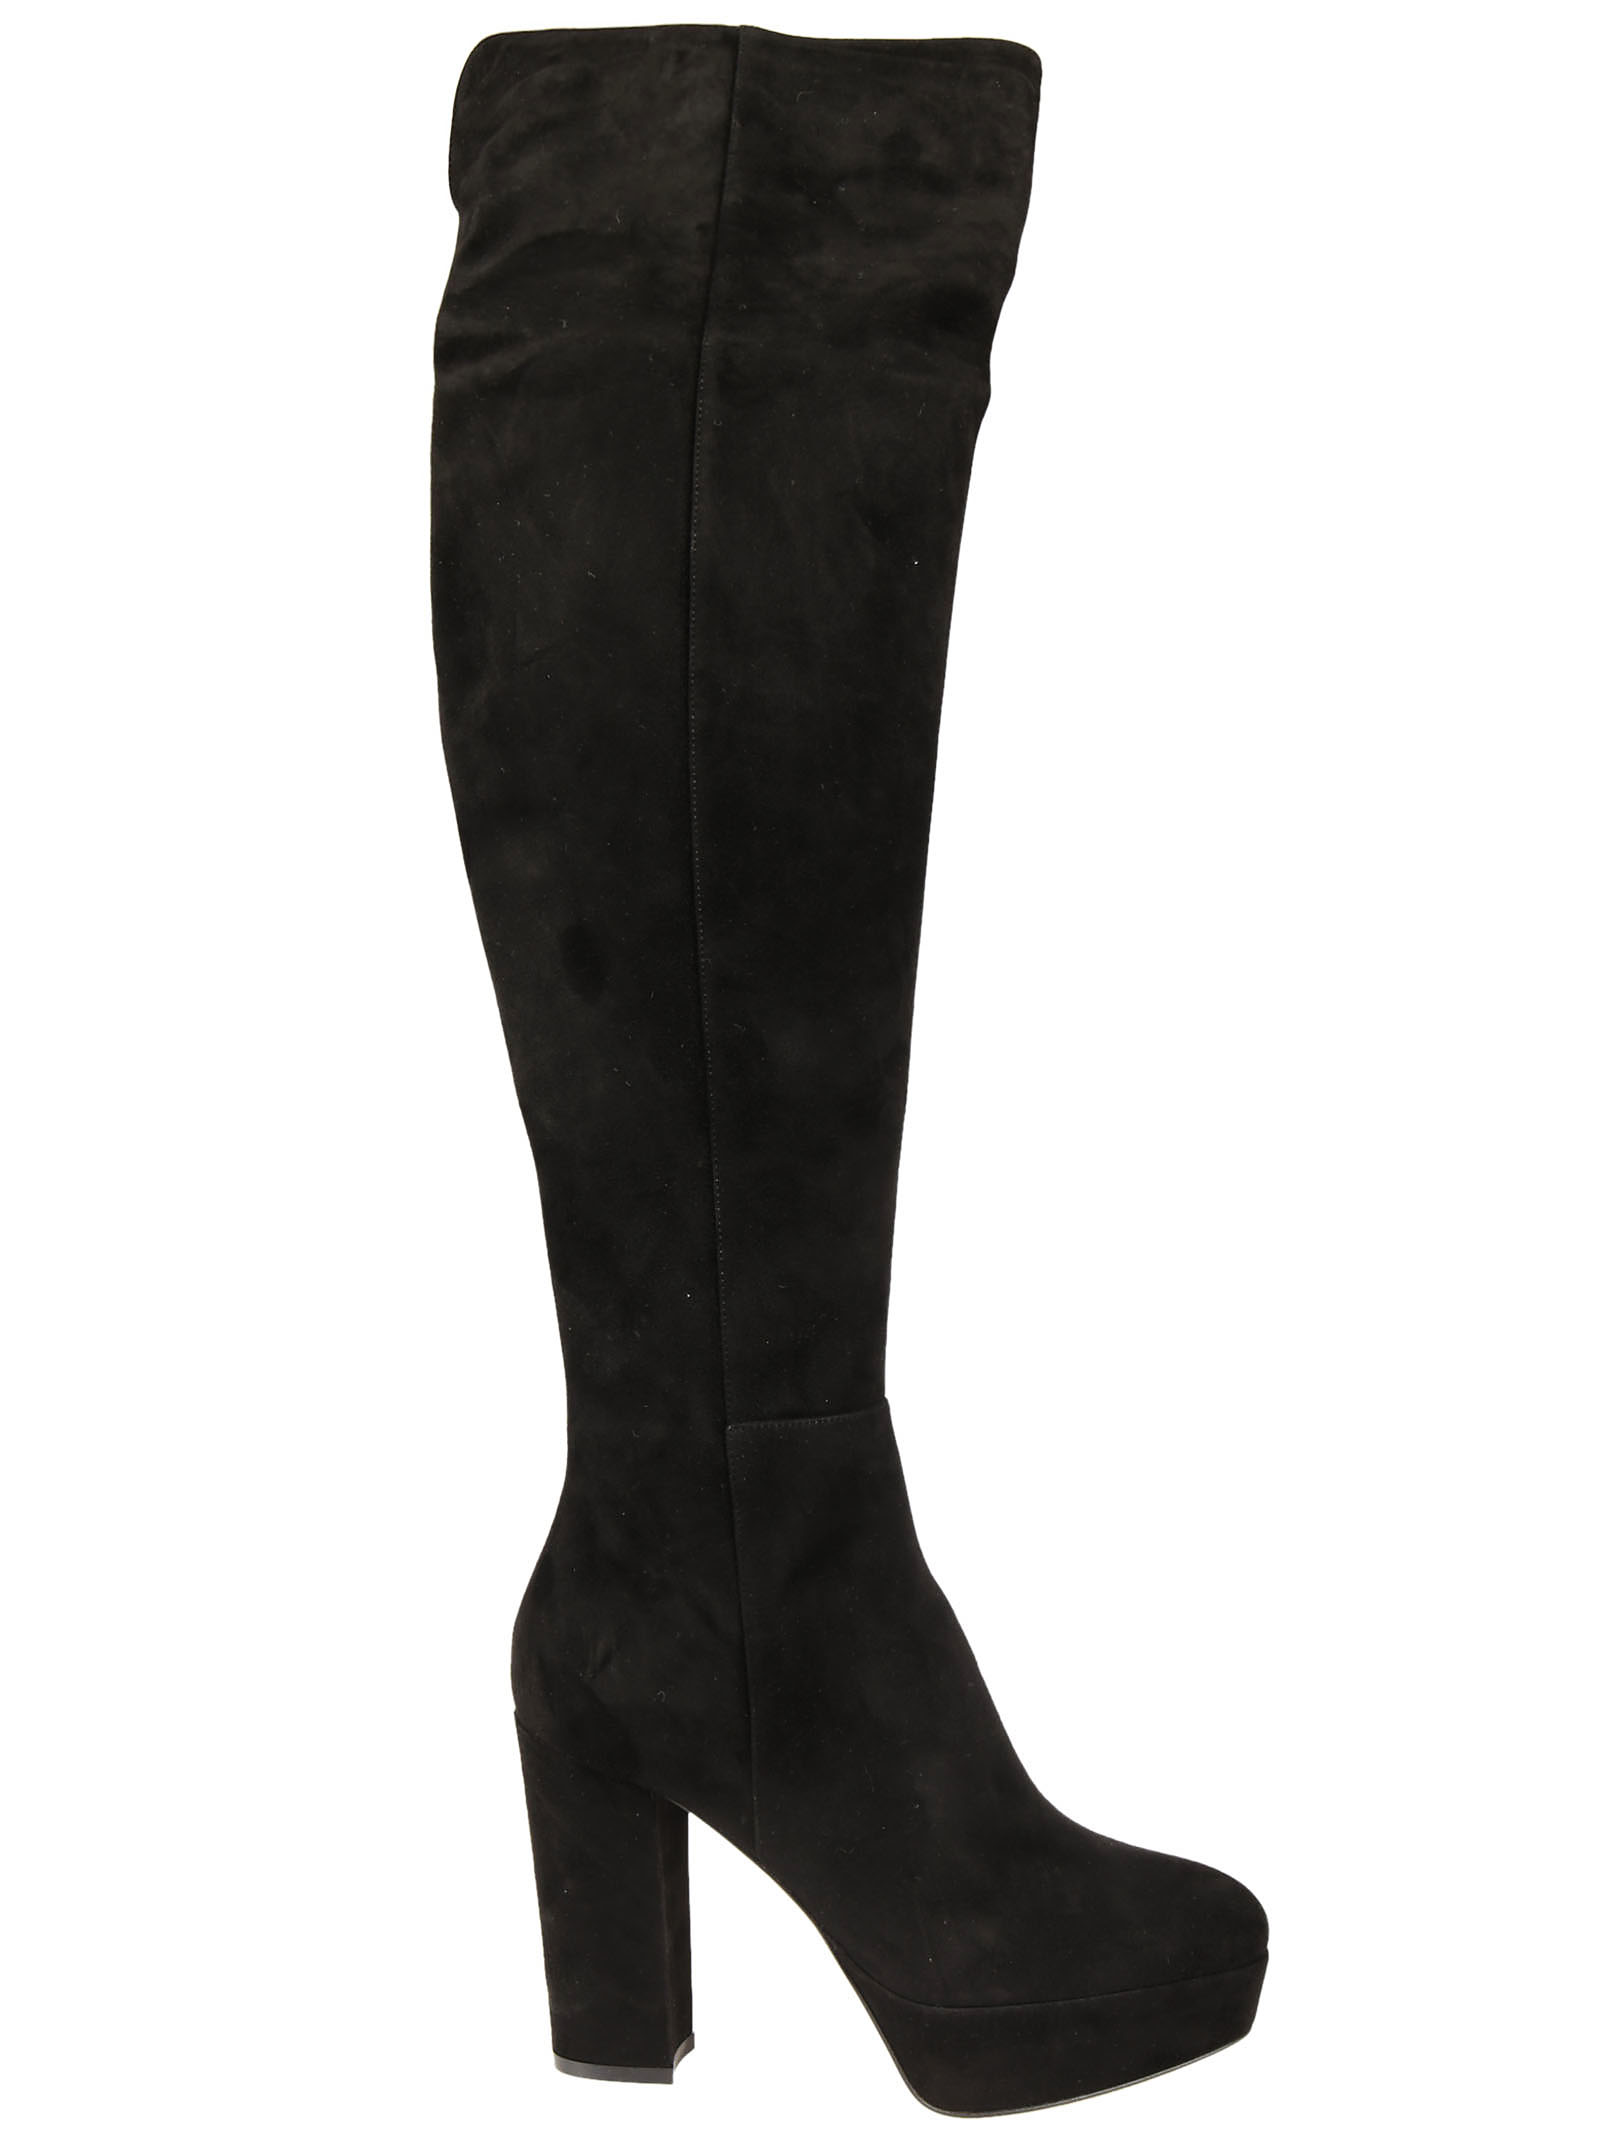 Gianvito Rossi Gianvito Rossi Rolling High Thigh Boots